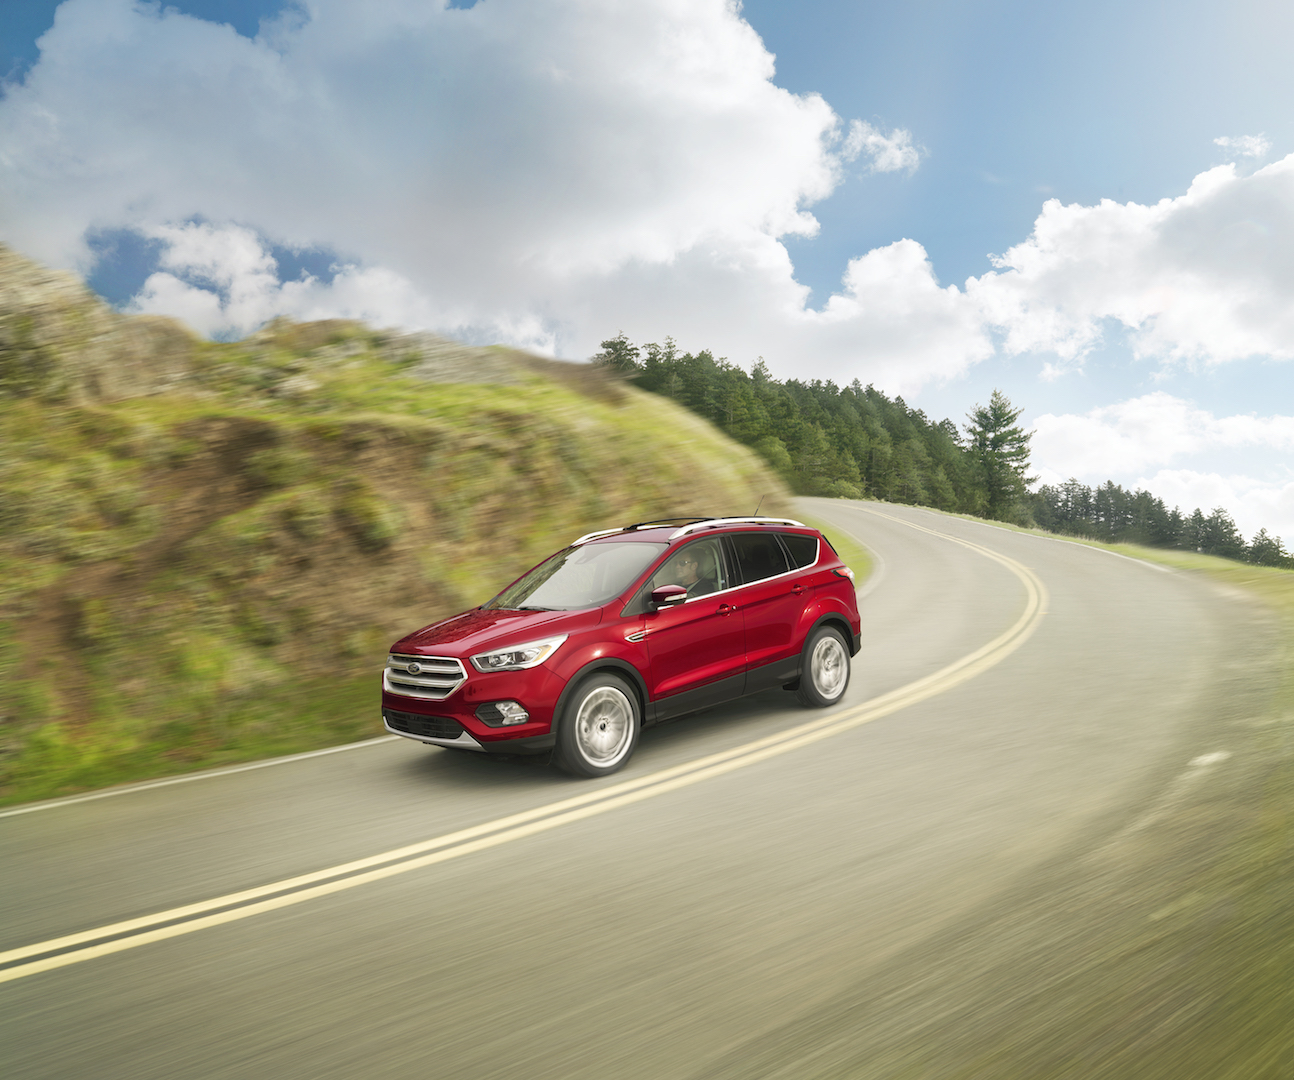 New And Used Ford Escape: Prices, Photos, Reviews, Specs